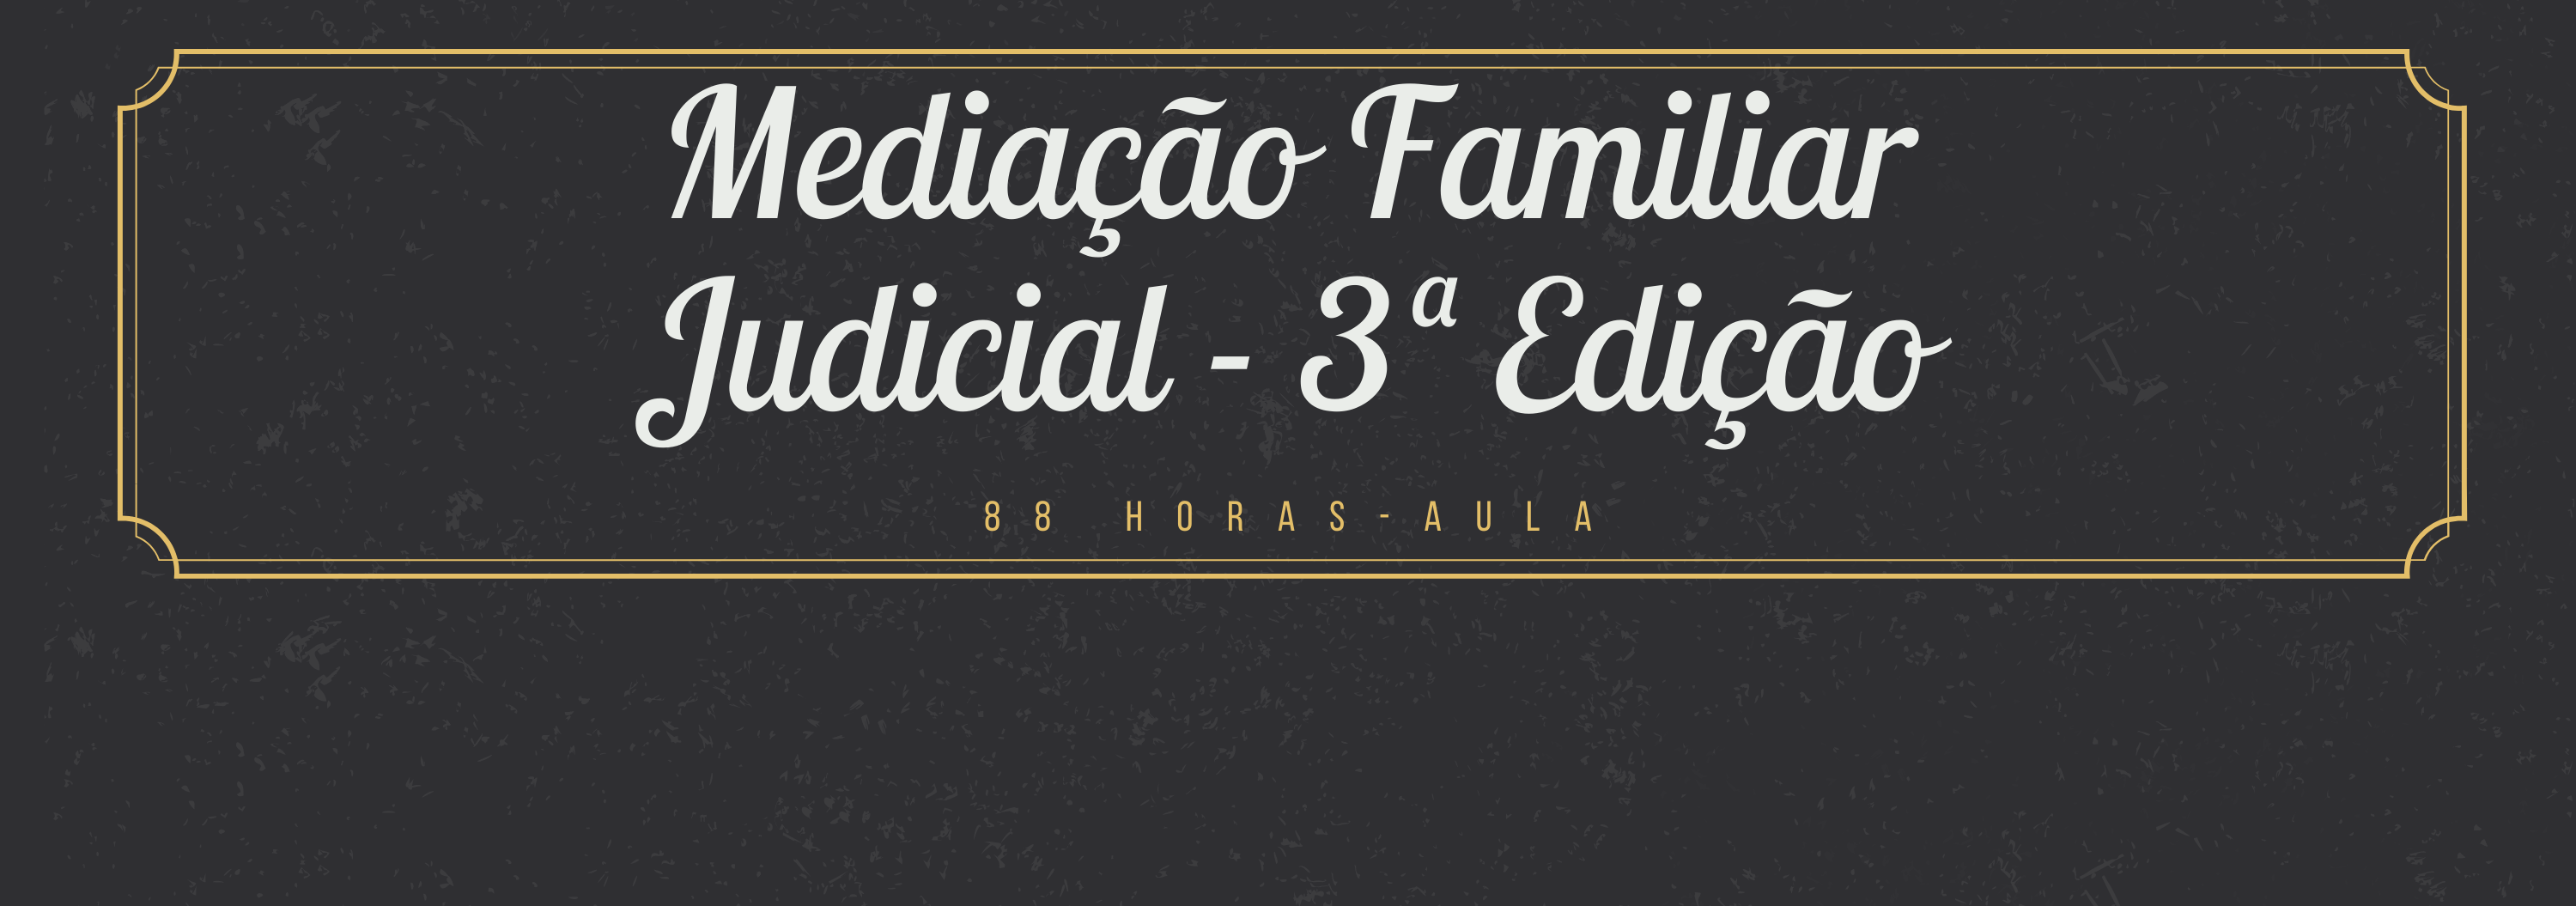 12Mediao_Familiar_Judicial_-_3_Edio